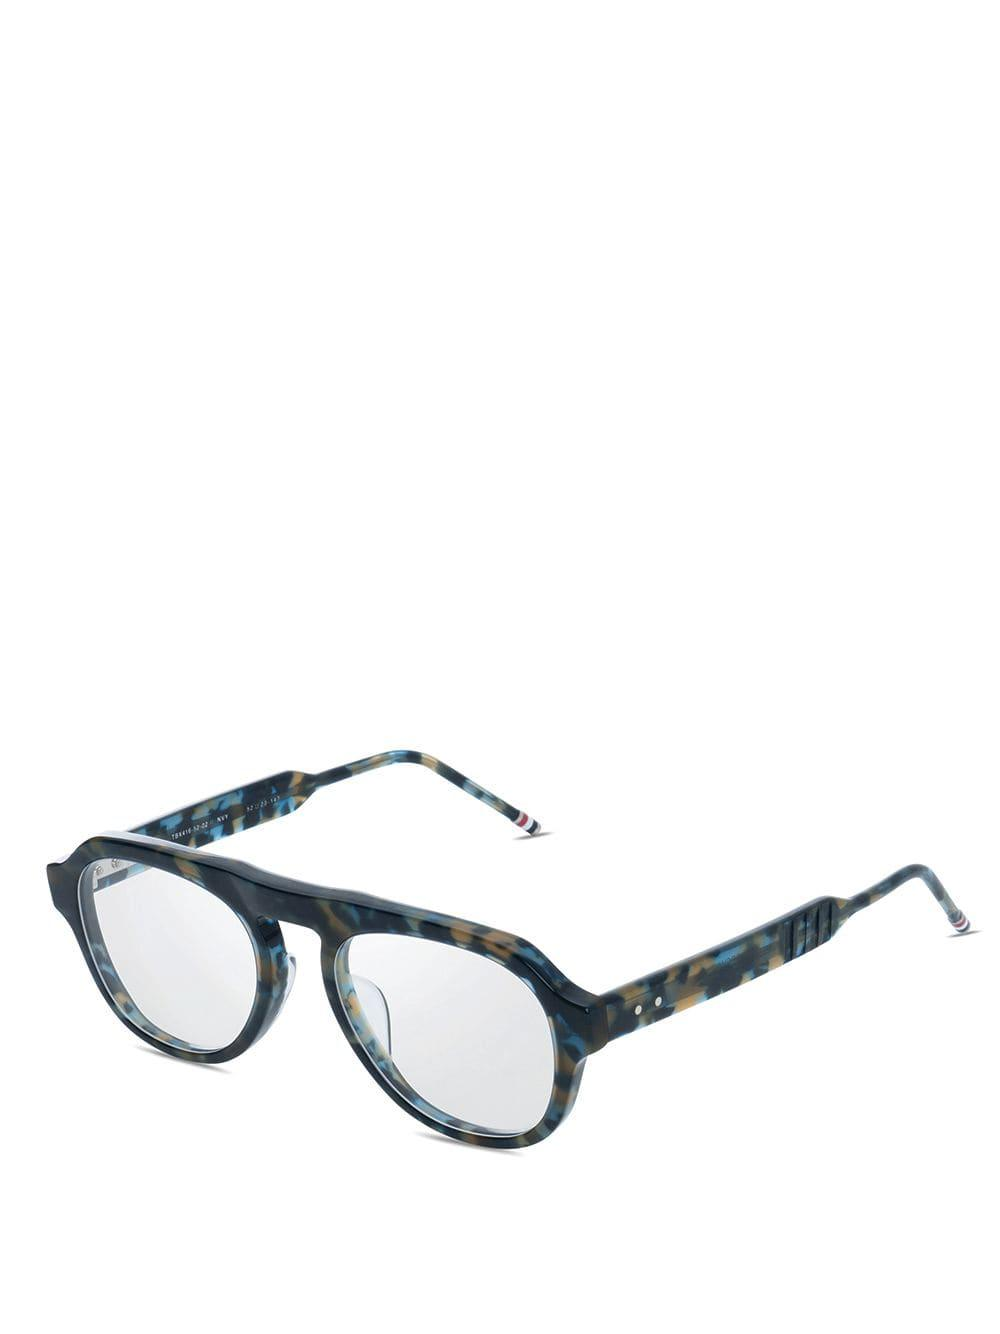 141195a077b Thom Browne Navy Tortoise Glasses in Blue for Men - Lyst